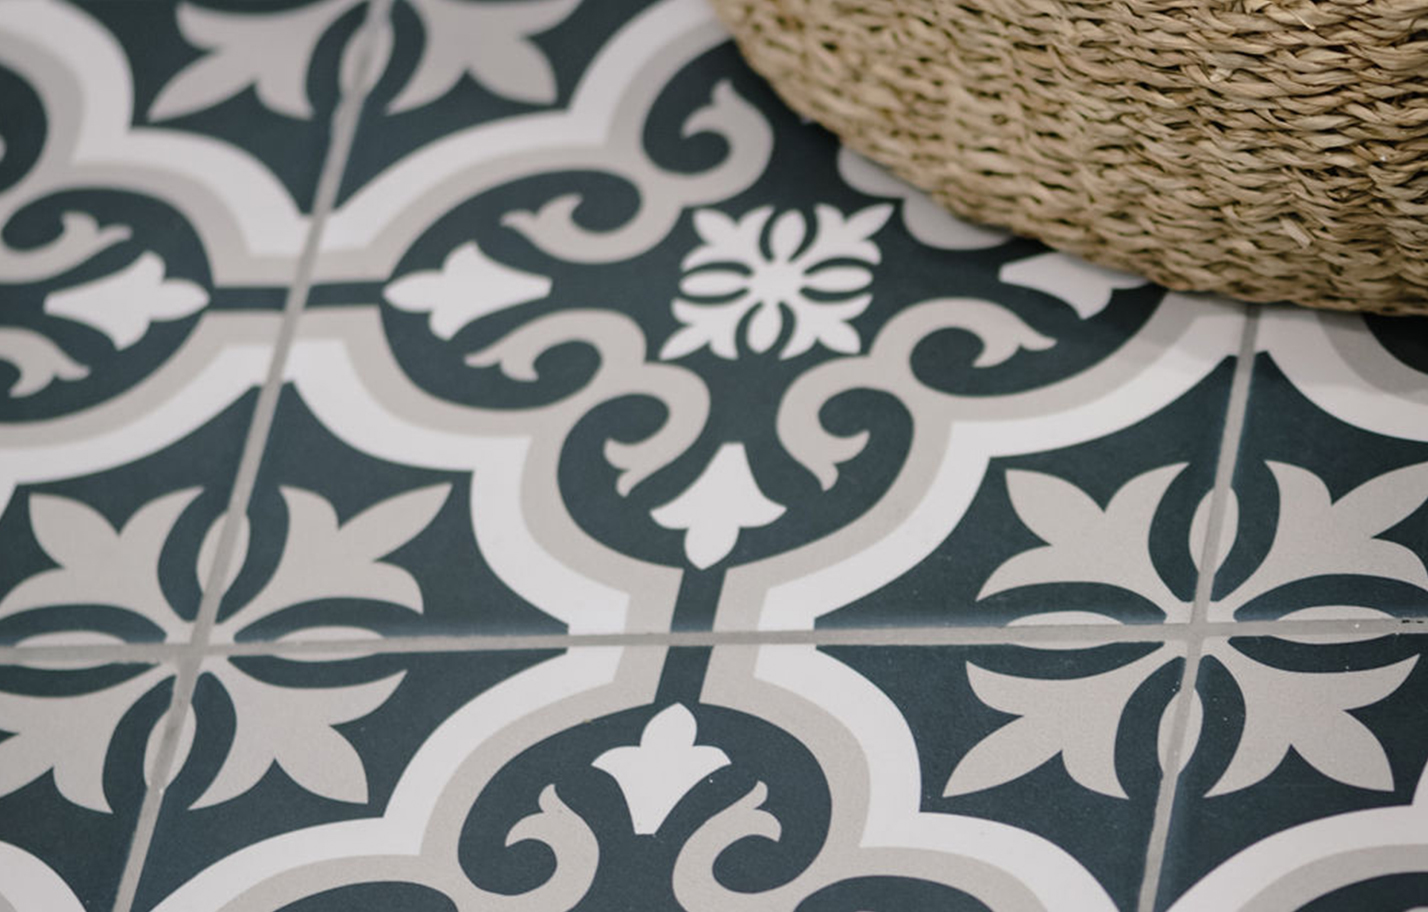 Harlow patterned tiles